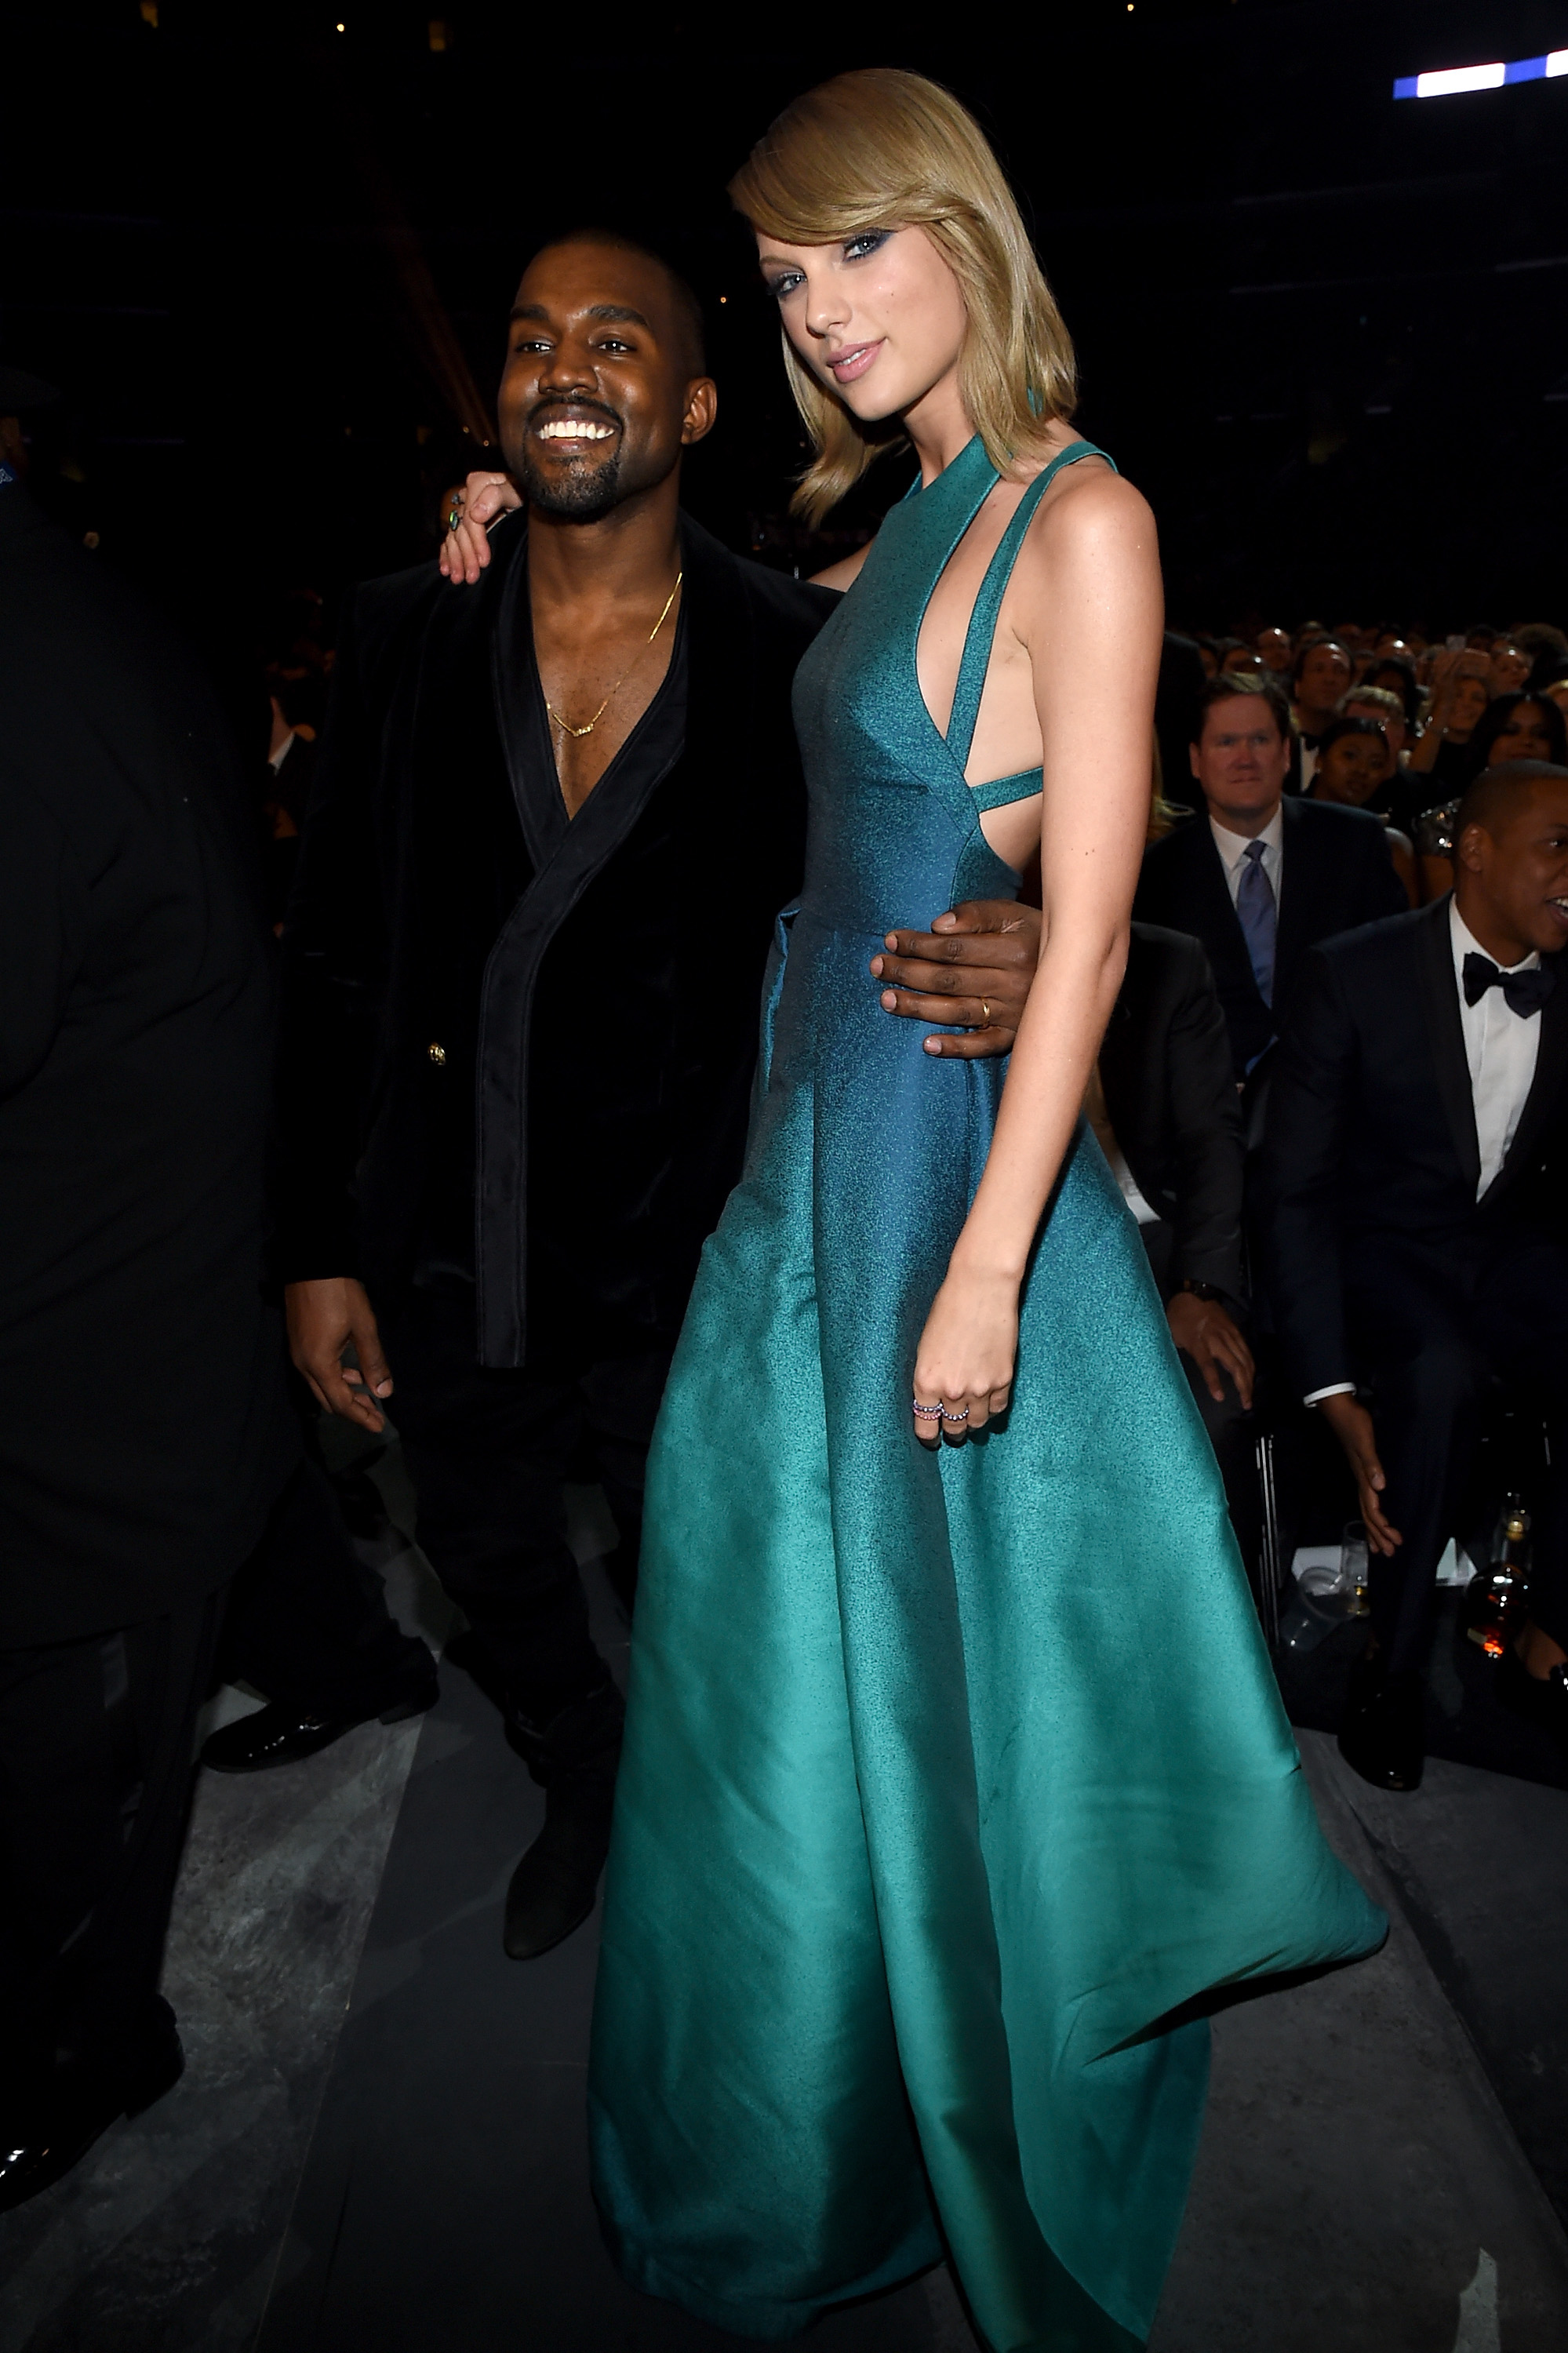 Taylor Swift confirms she and Kanye West have discussed collaborating